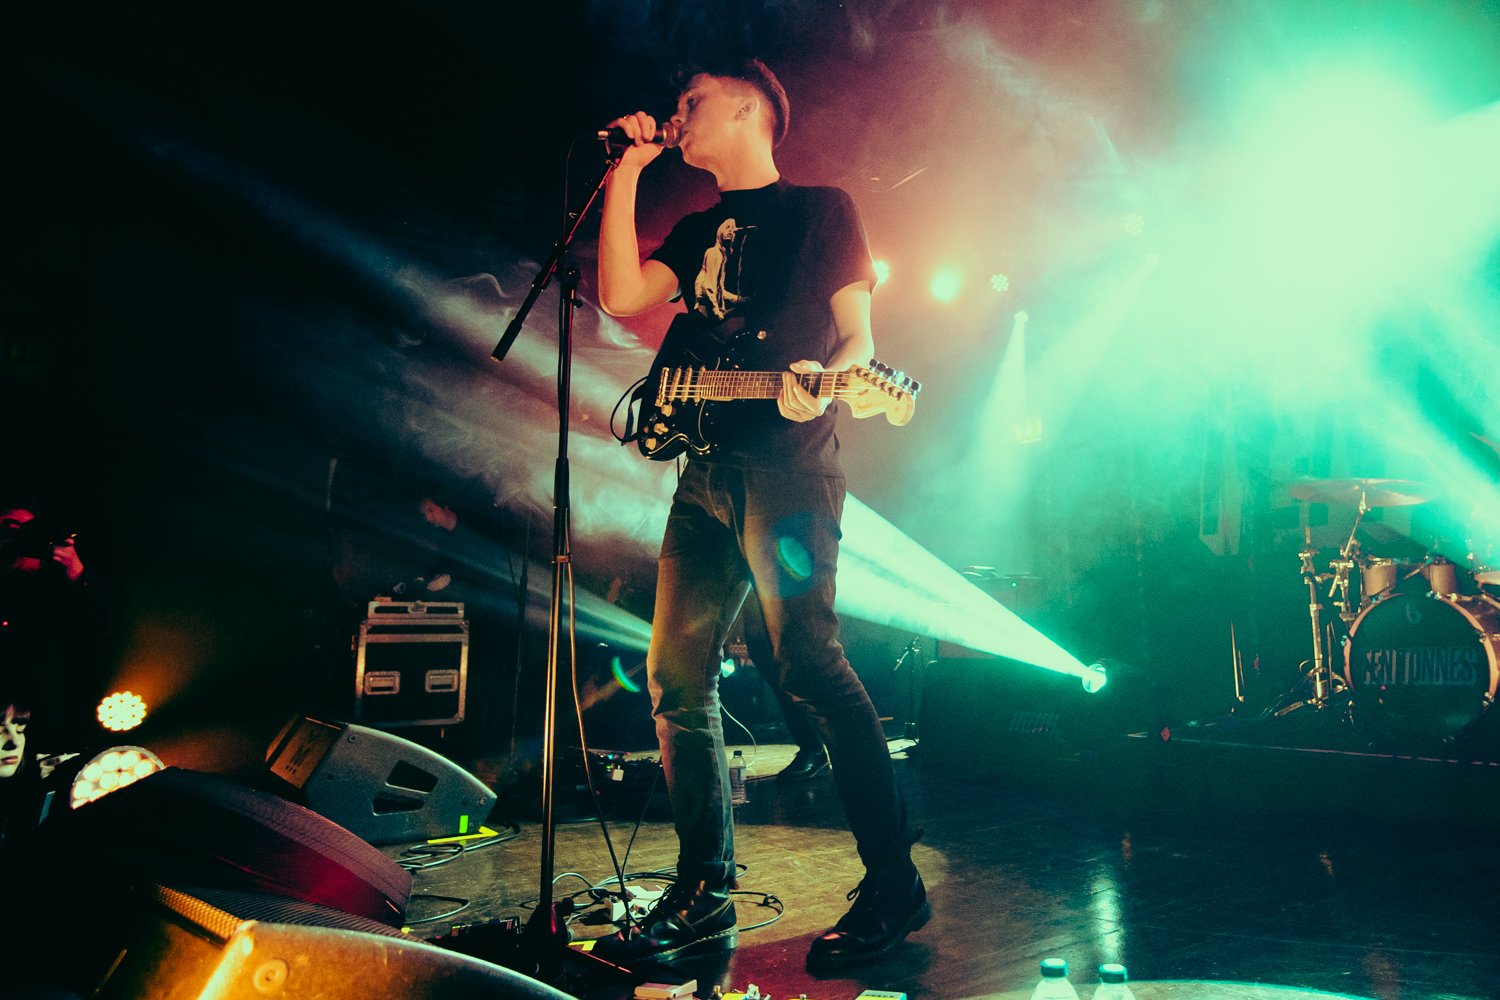 Live Review: Ten Tonnes at Scala, London, 05/02/2019